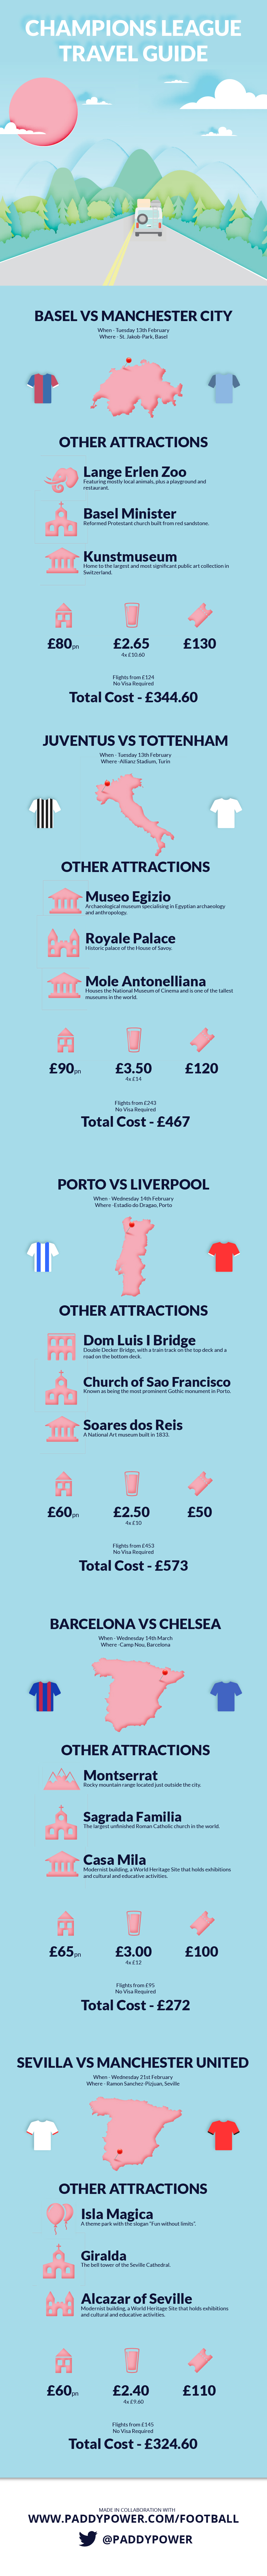 PP FOOTBALL Champions League Travel Guide